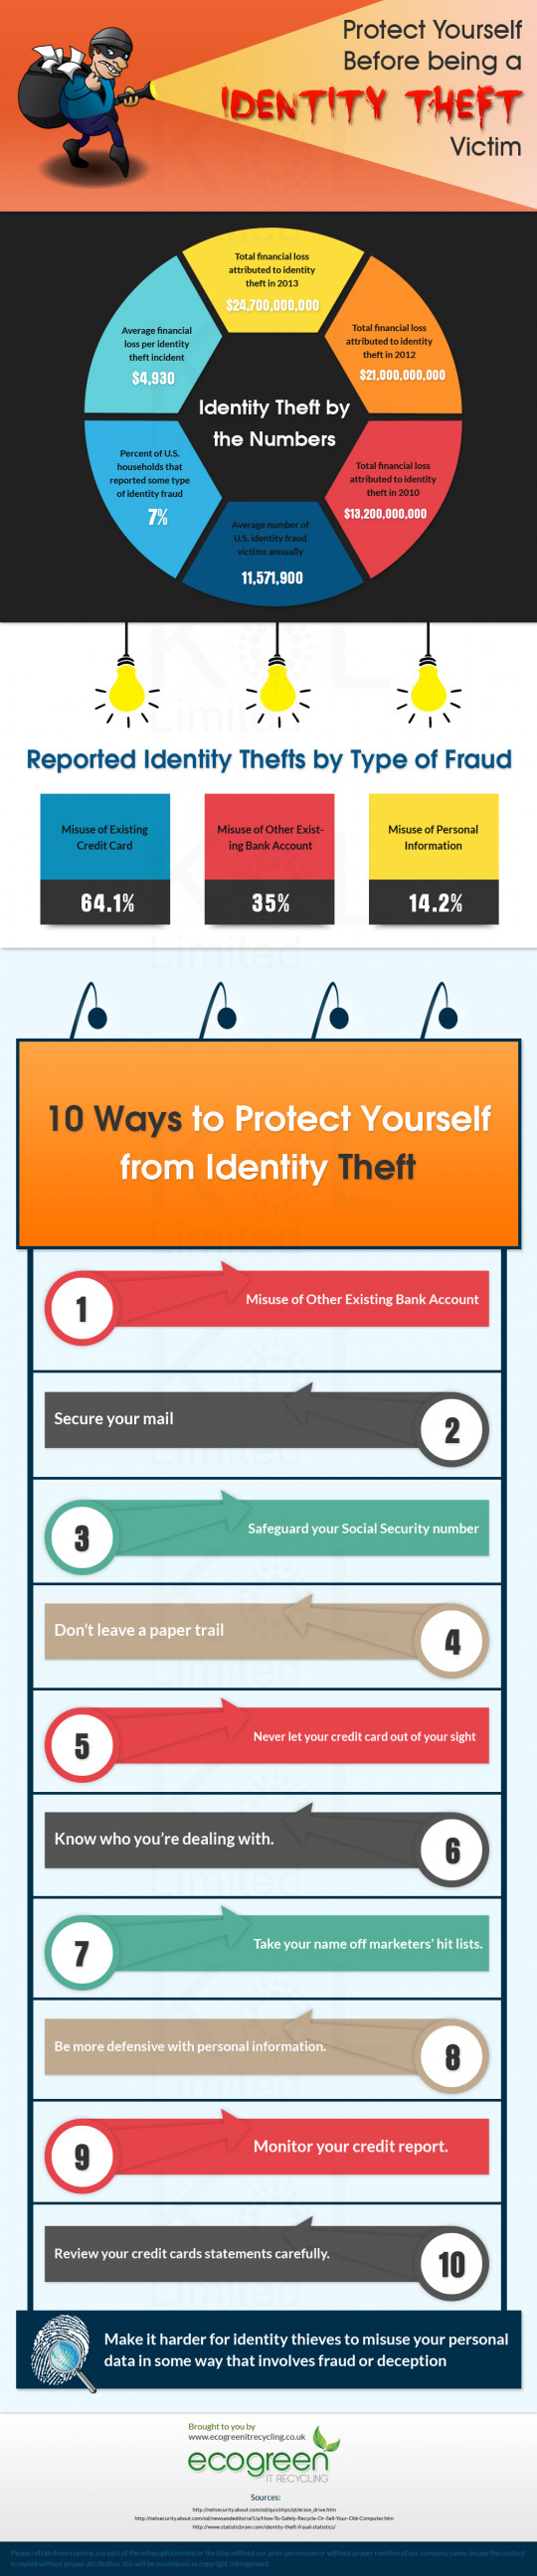 Protect Yourself Before Being A Identity Theft Victim